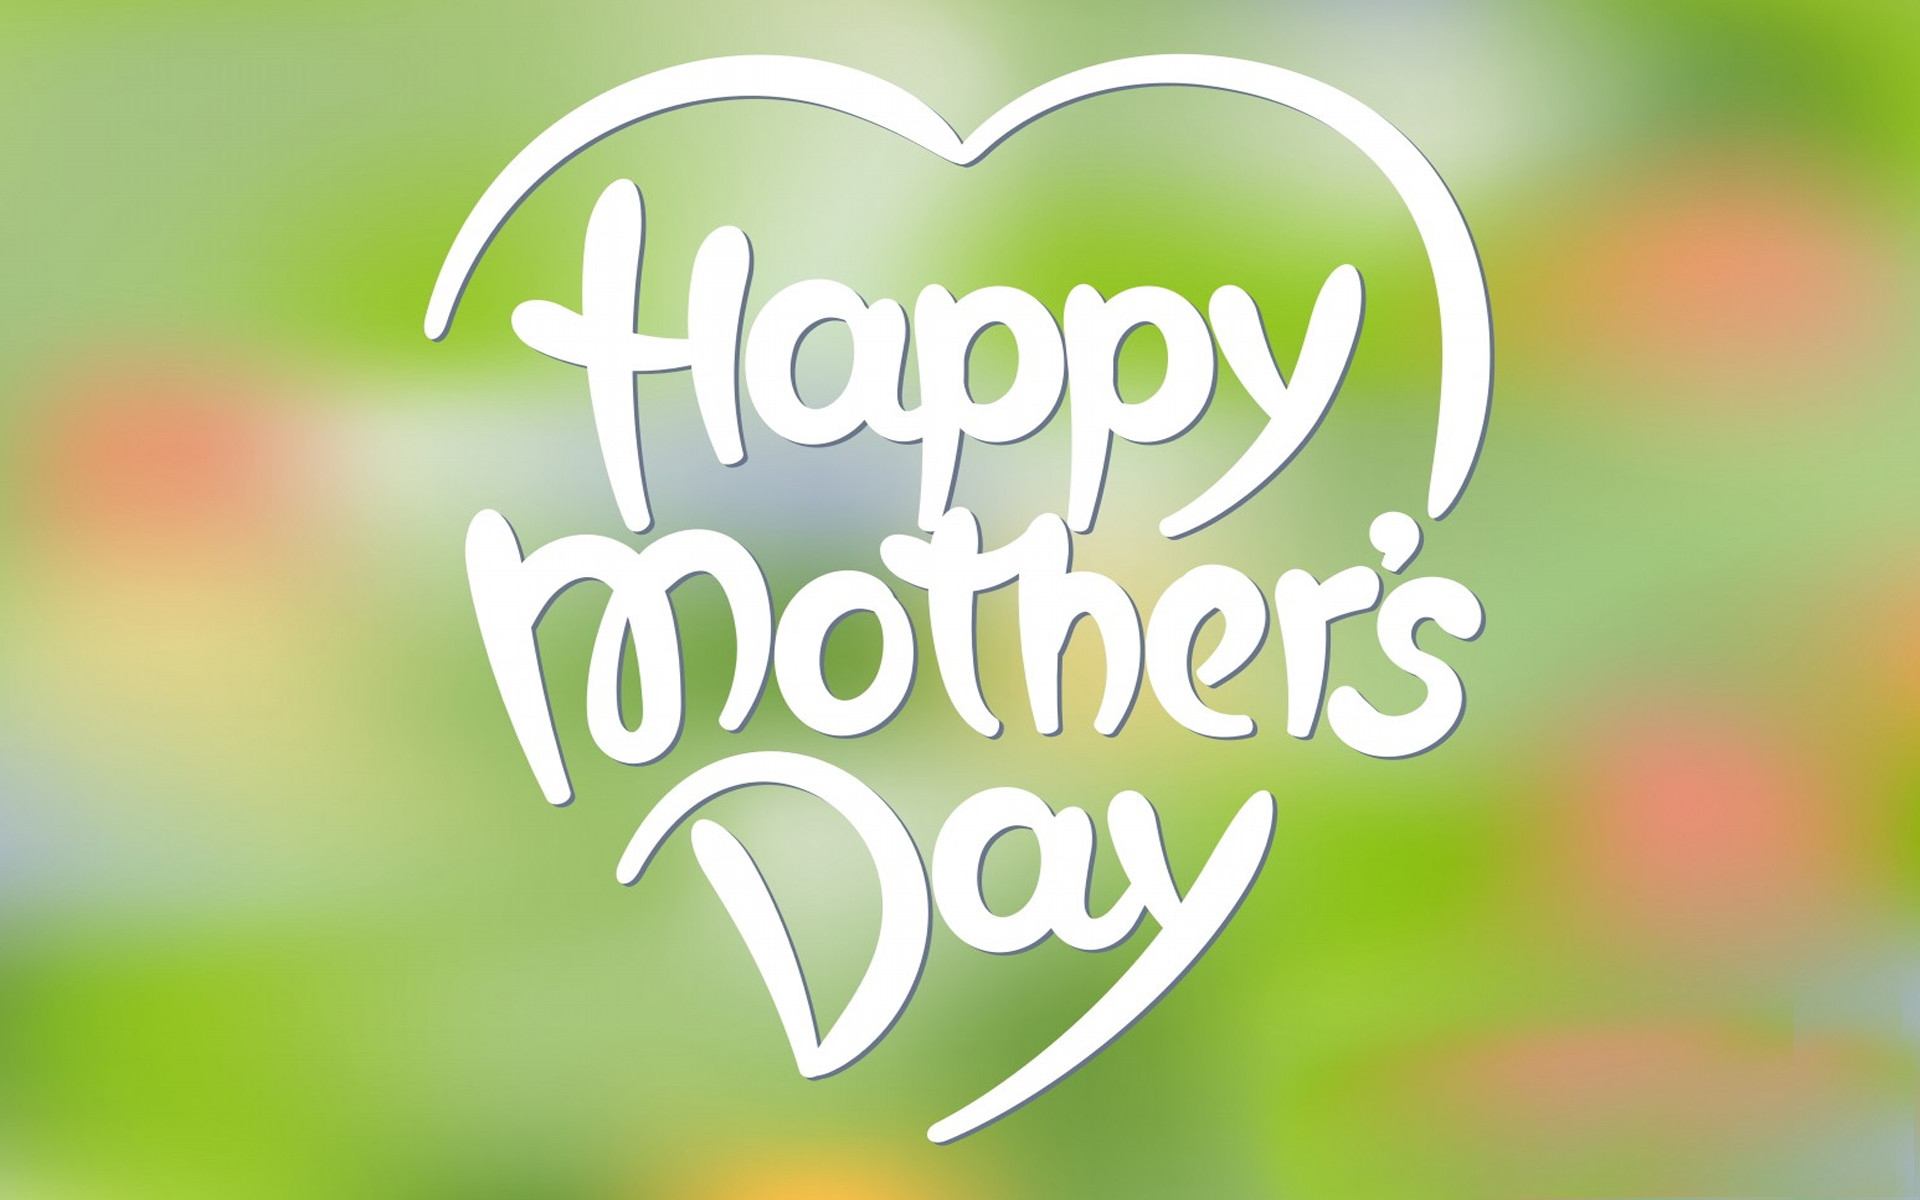 1920x1200 Mother's Day HD Images Download Happy Mother's Day HD Images, Wallpapers  Free Download